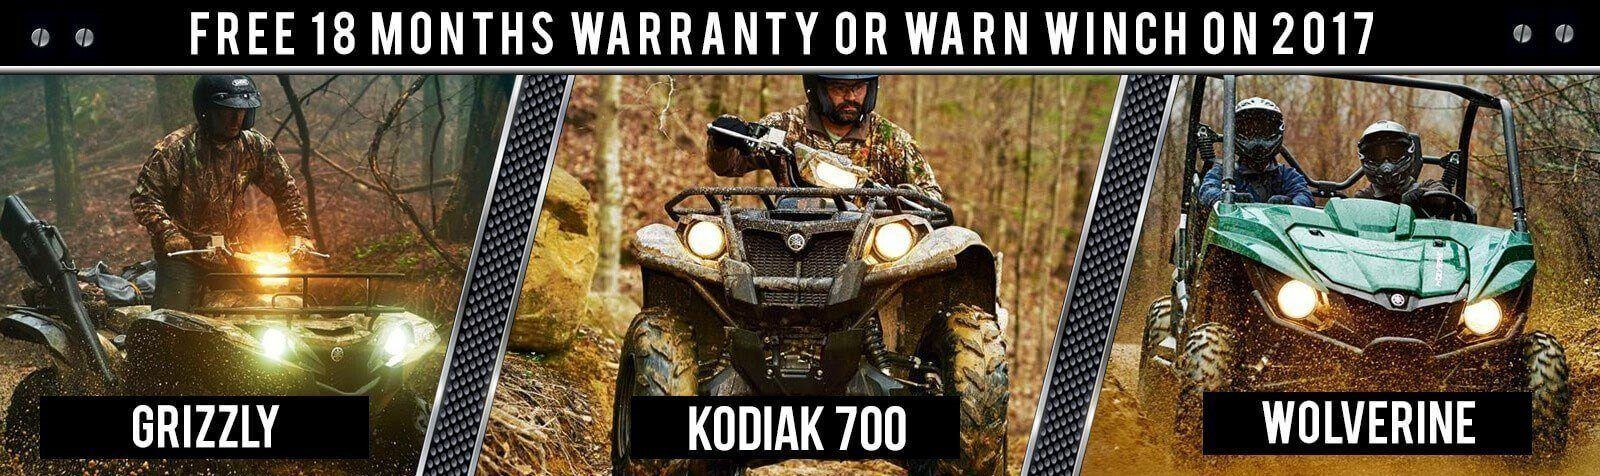 yamaha-warranty-2-10